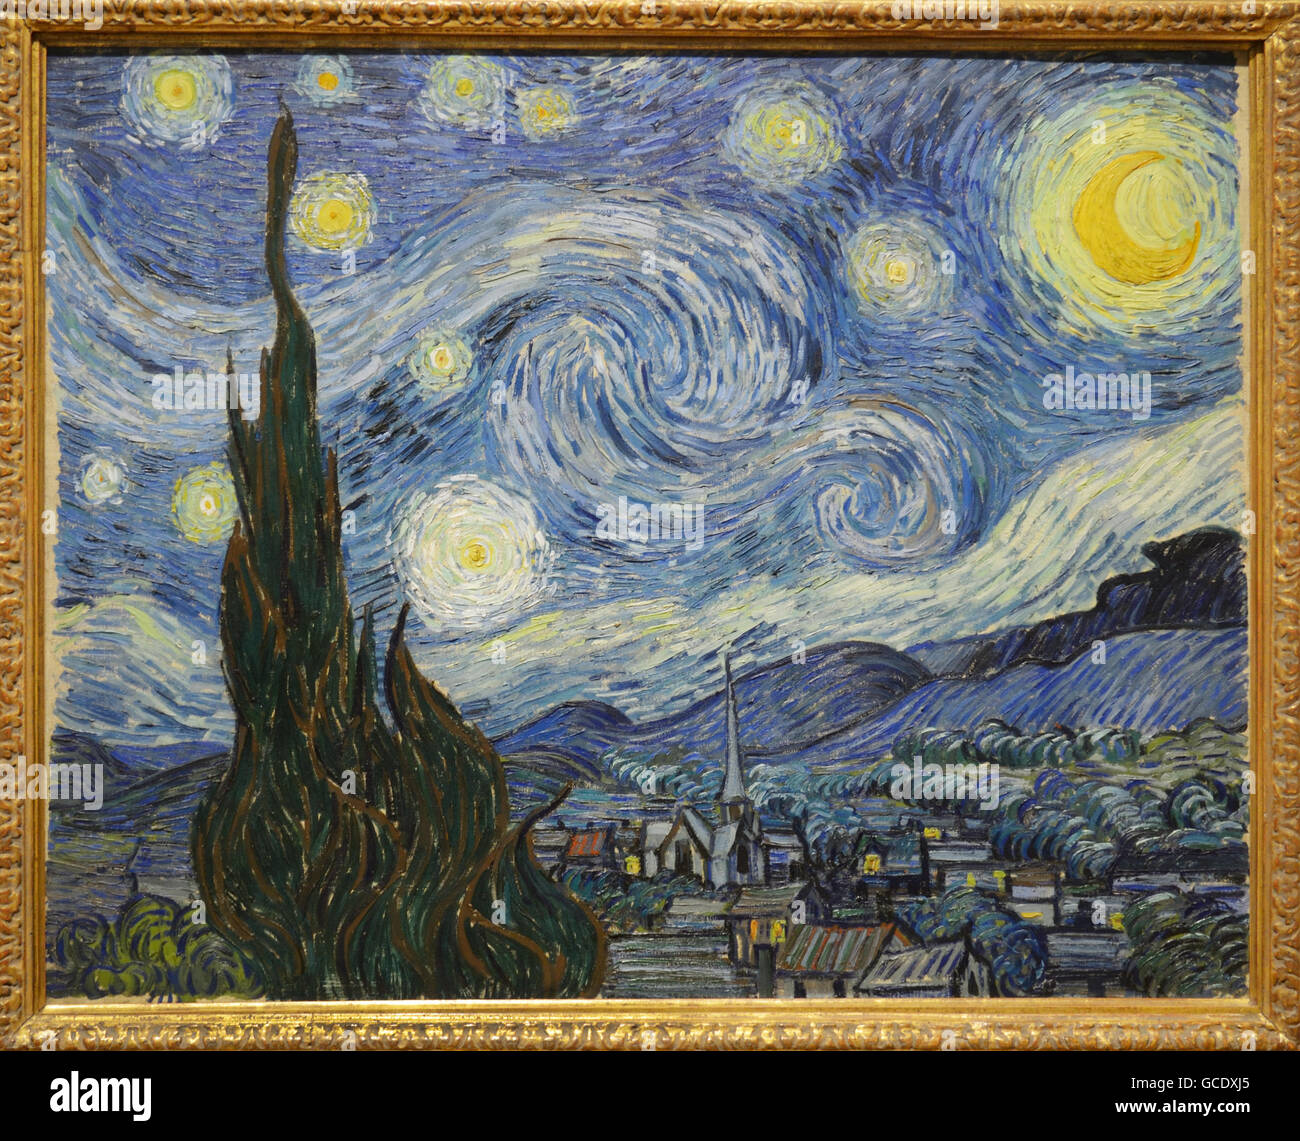 The Starry Night, 1889, Vincent Van Gogh - Stock Image